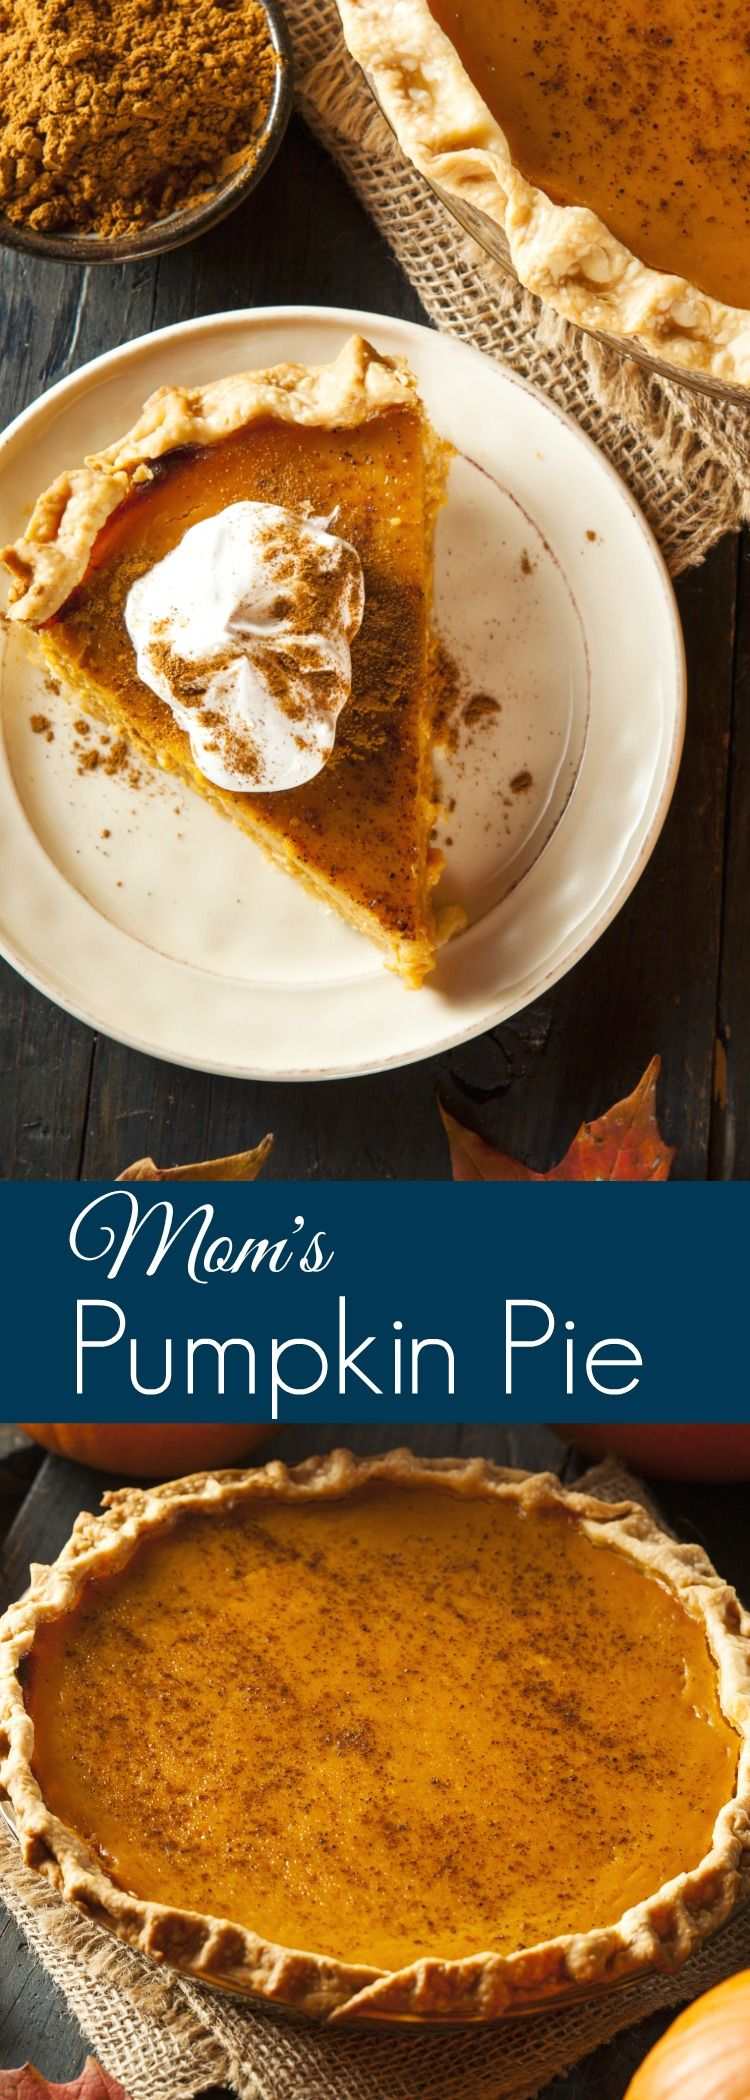 The Best Pumpkin Pie | Share the magic with this family recipe